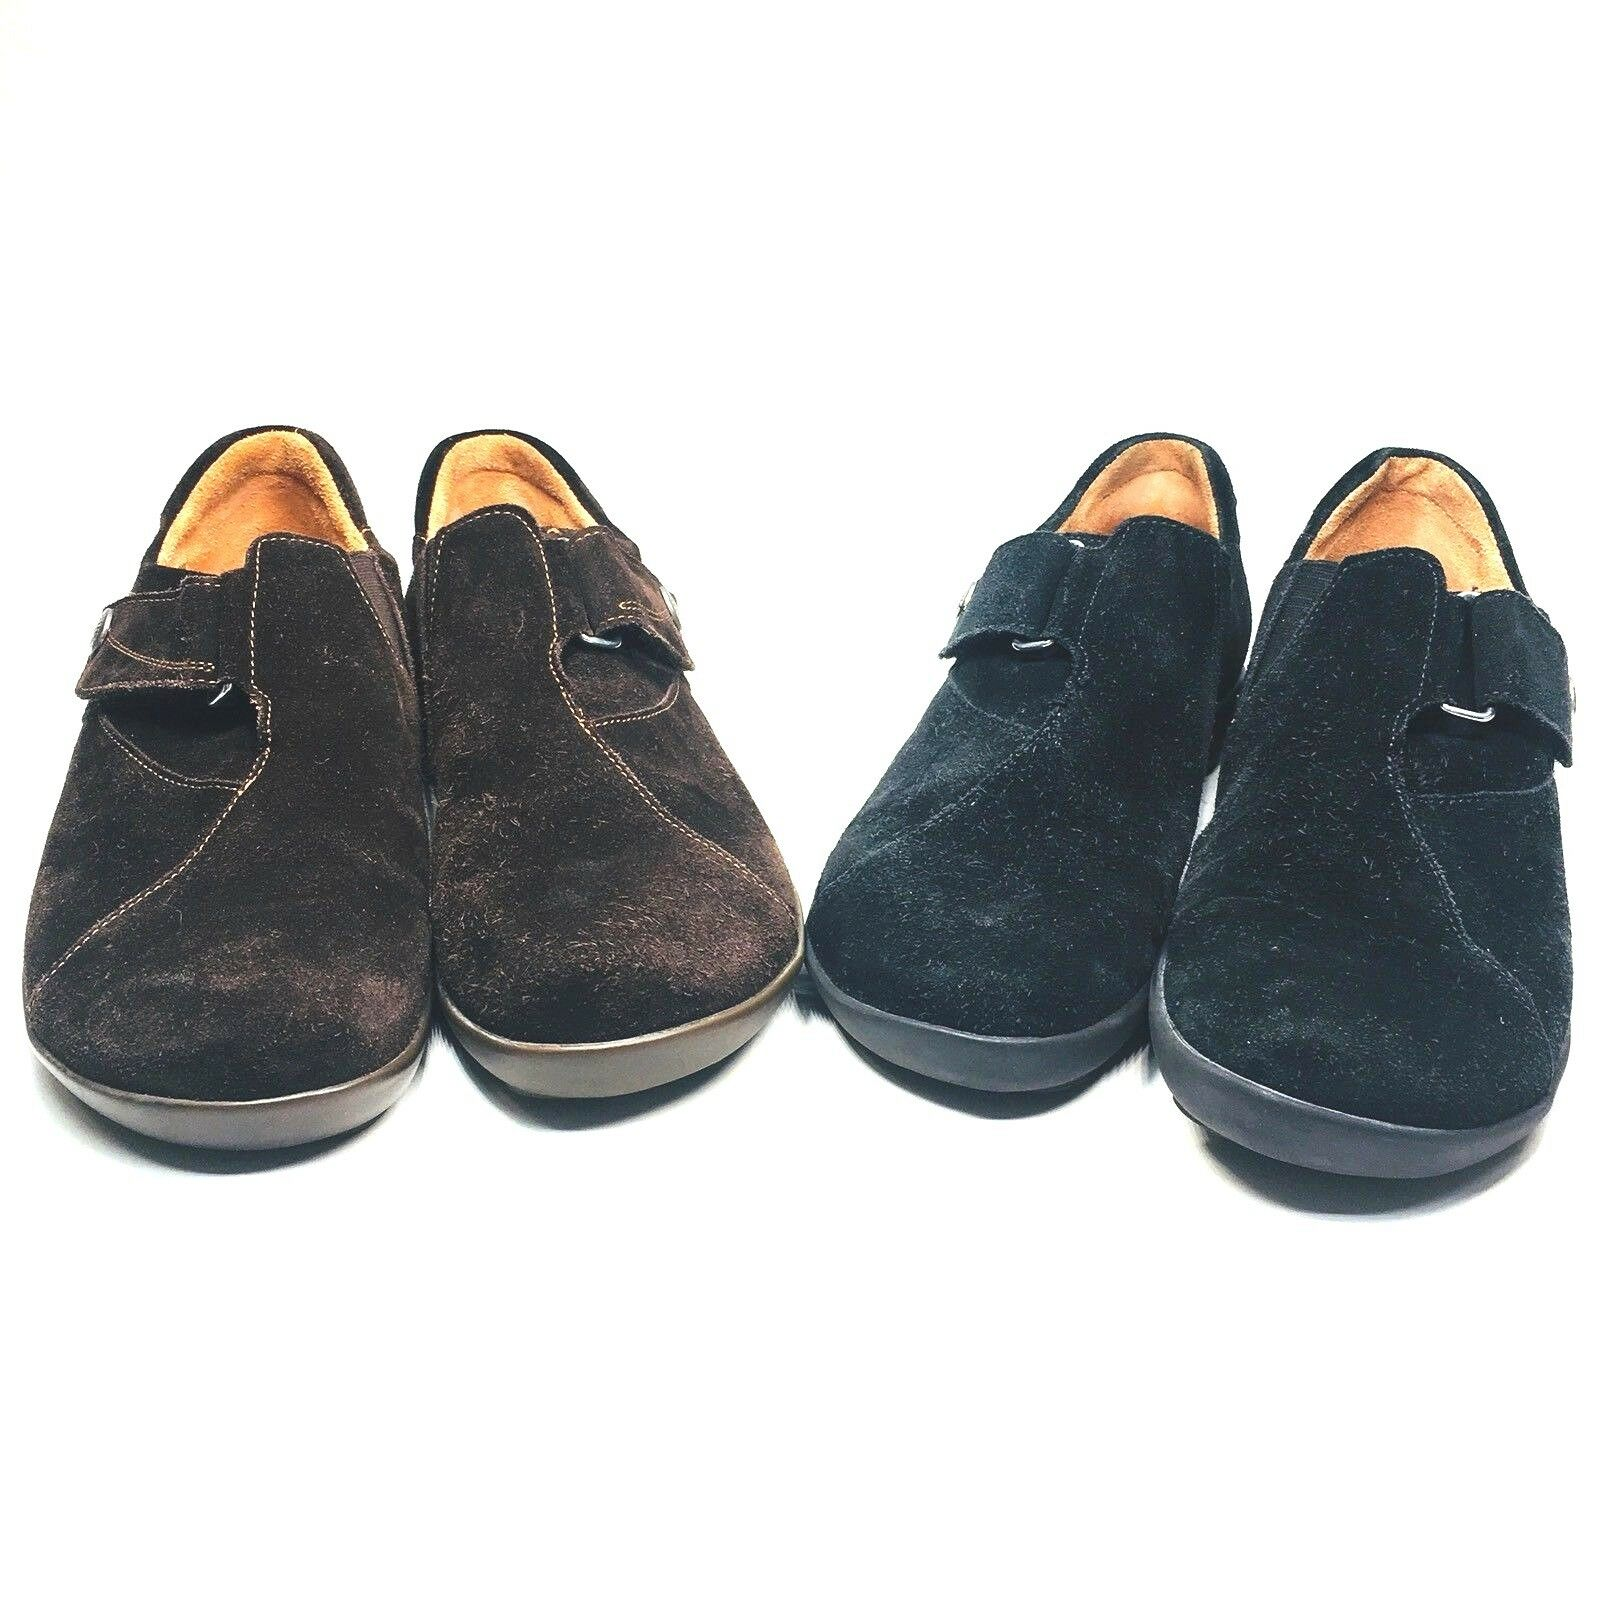 Think  Lot of 2 Women's 36 Black   Brown Suede Slip on shoes 5.5-6 M Hook & Loop